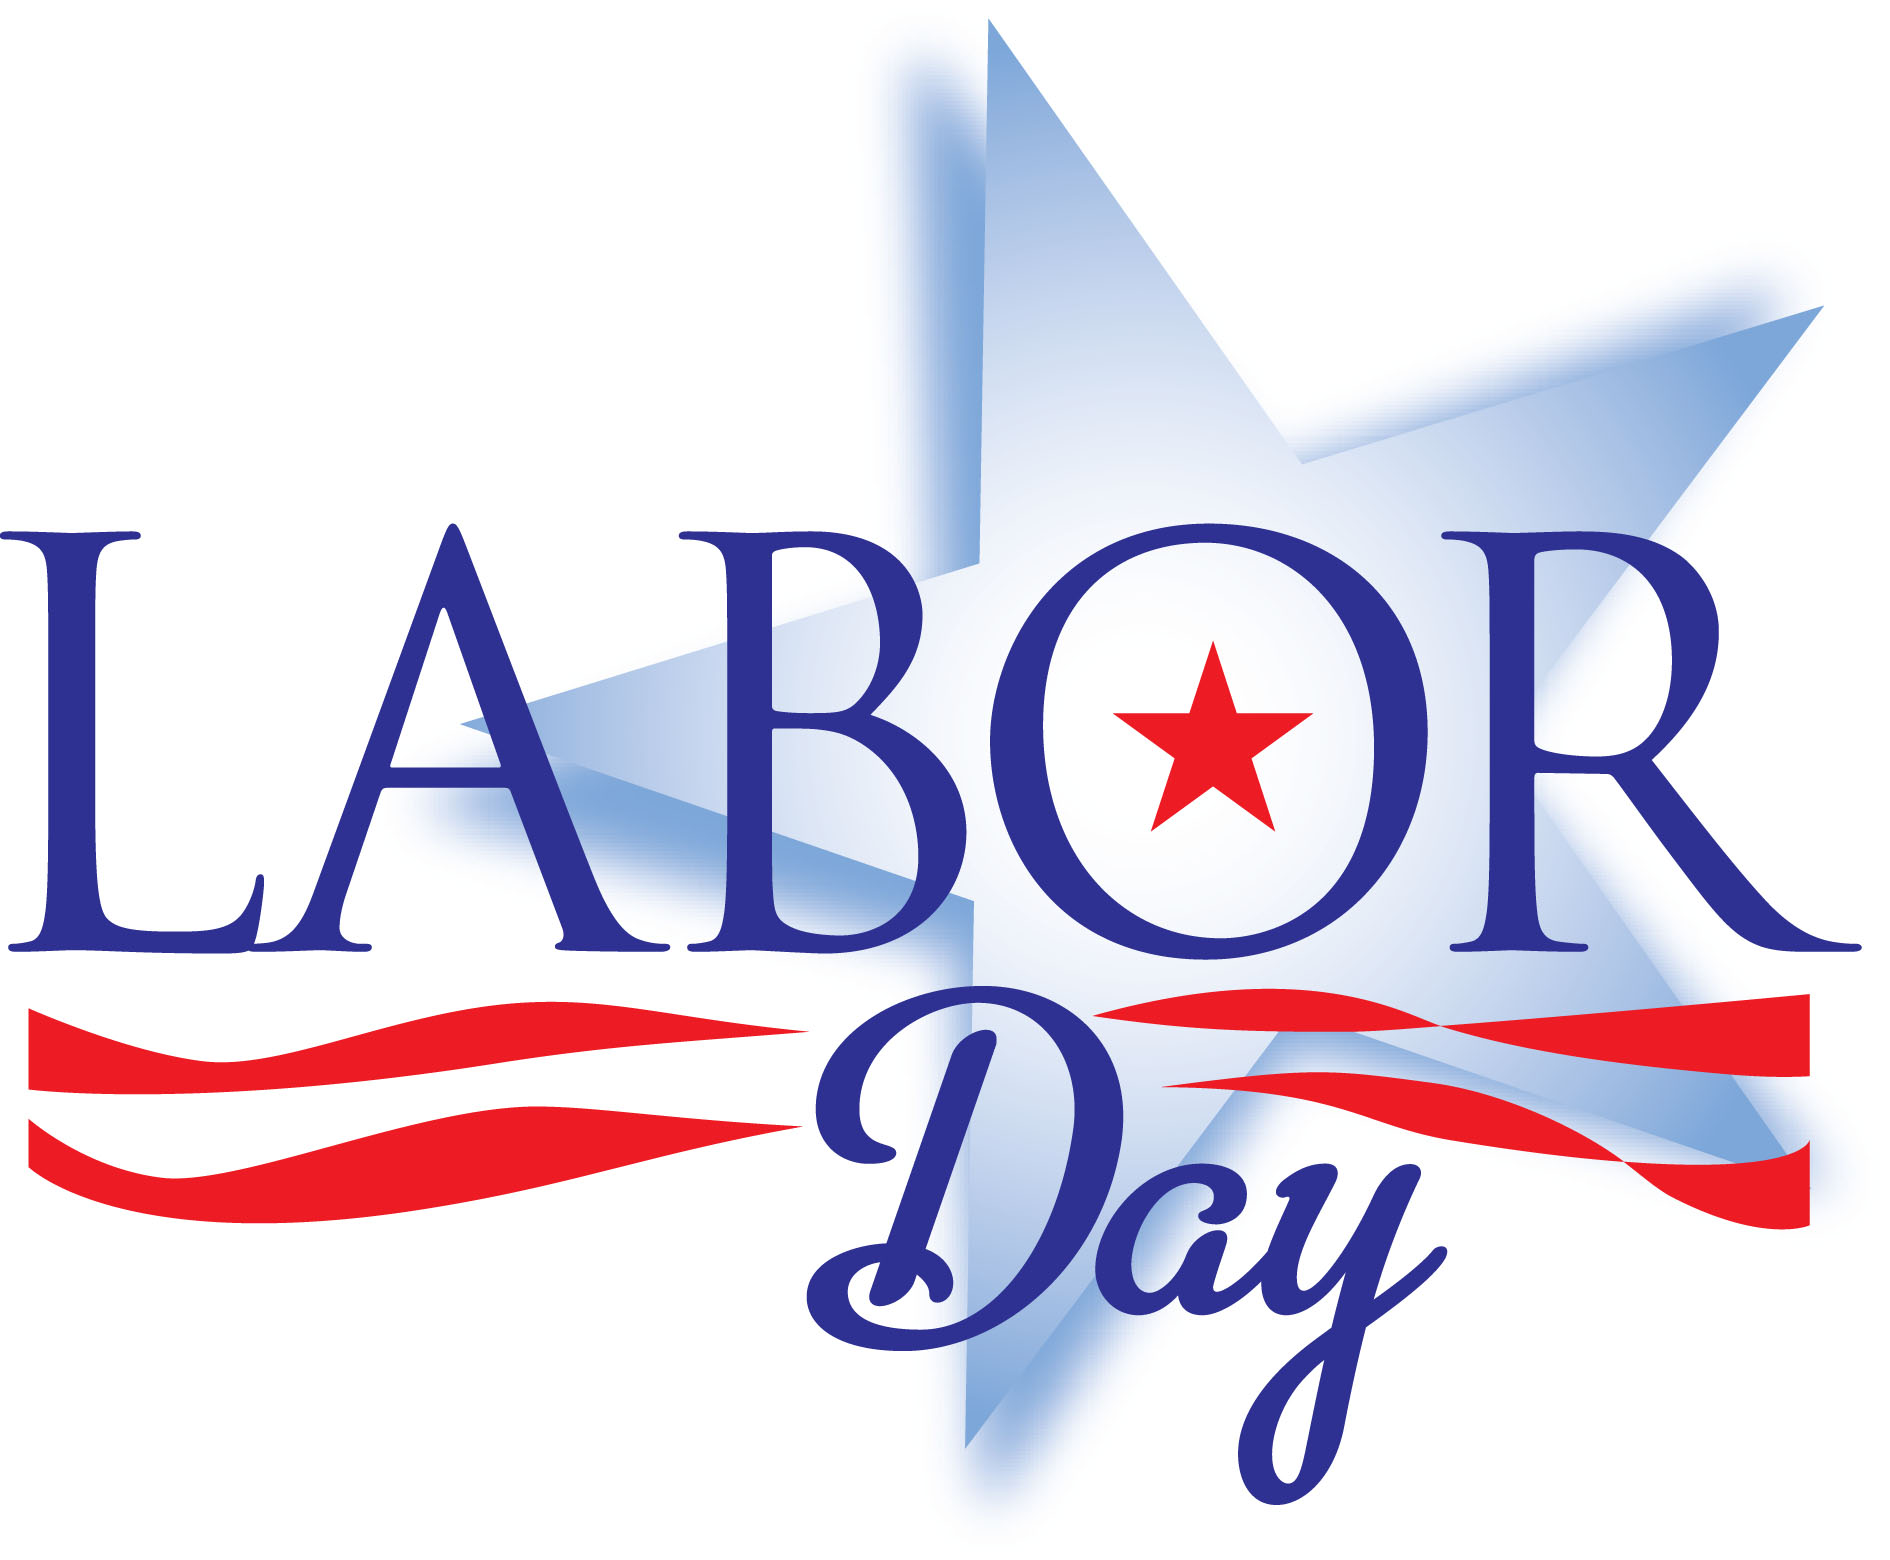 Labor Day Episcopal House Closed The Episcopal Diocese